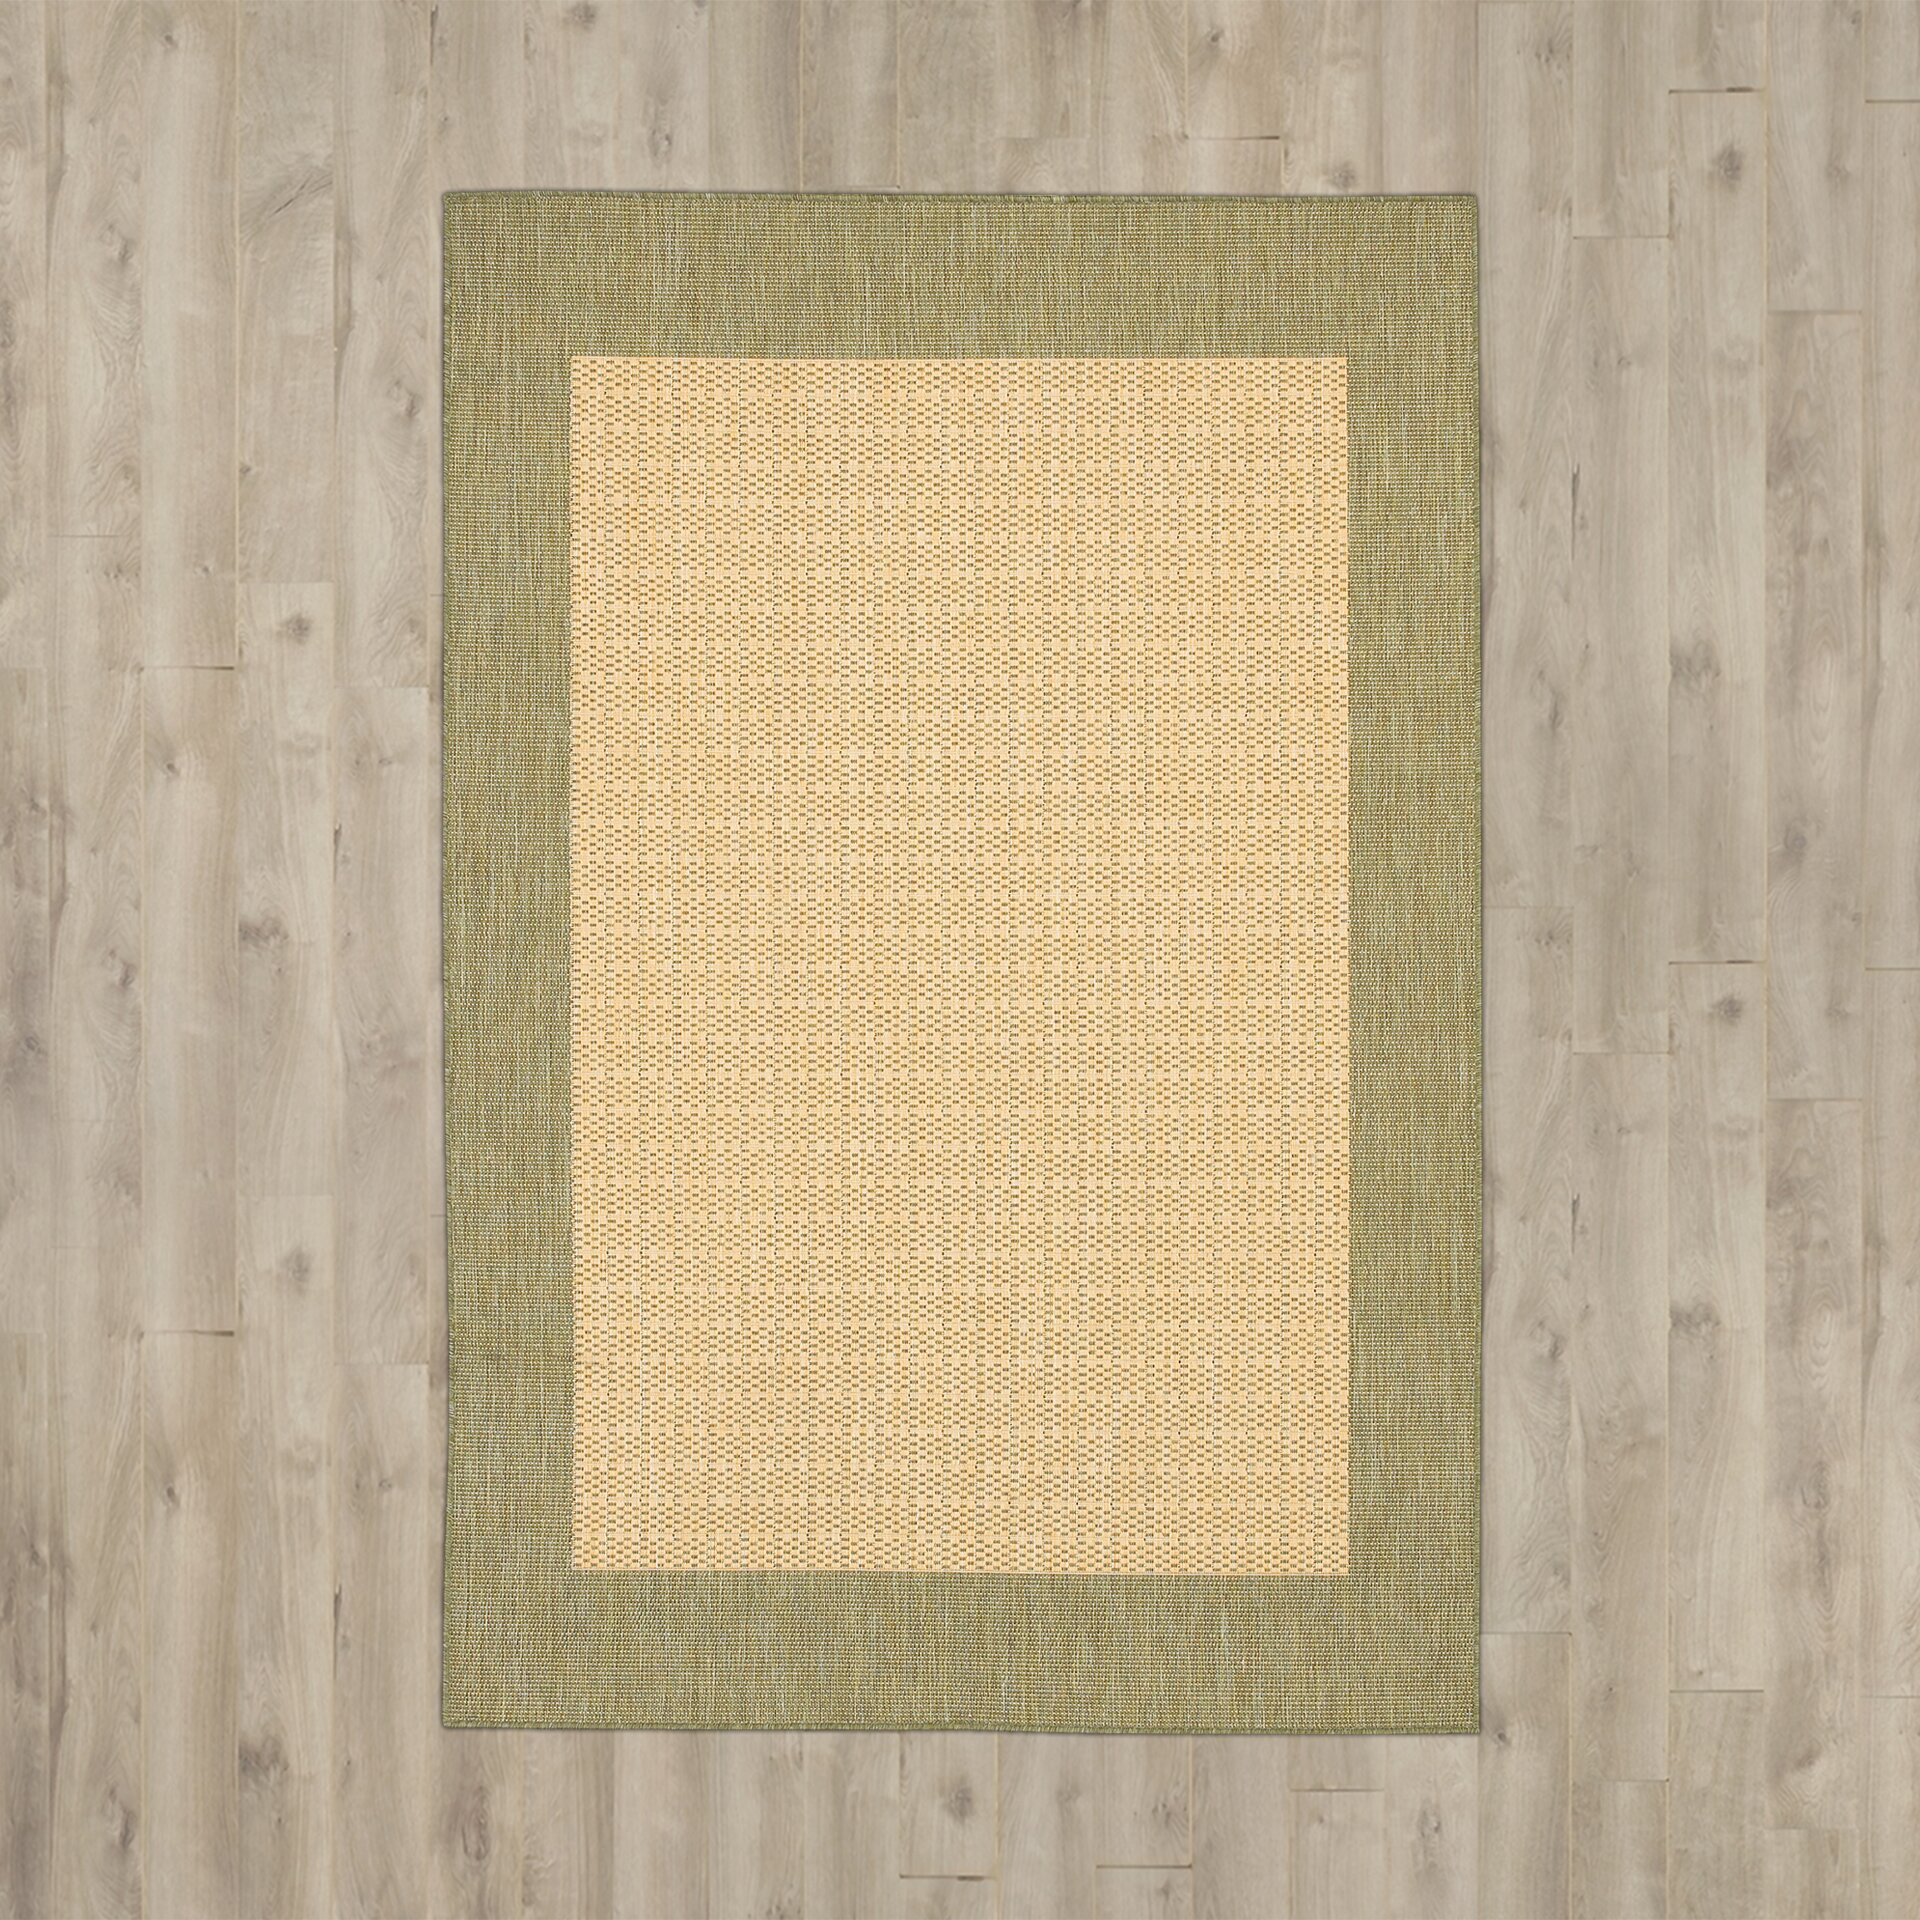 Bay isle home southard checkered field natural area rug reviews - Checkerboard area rug ...